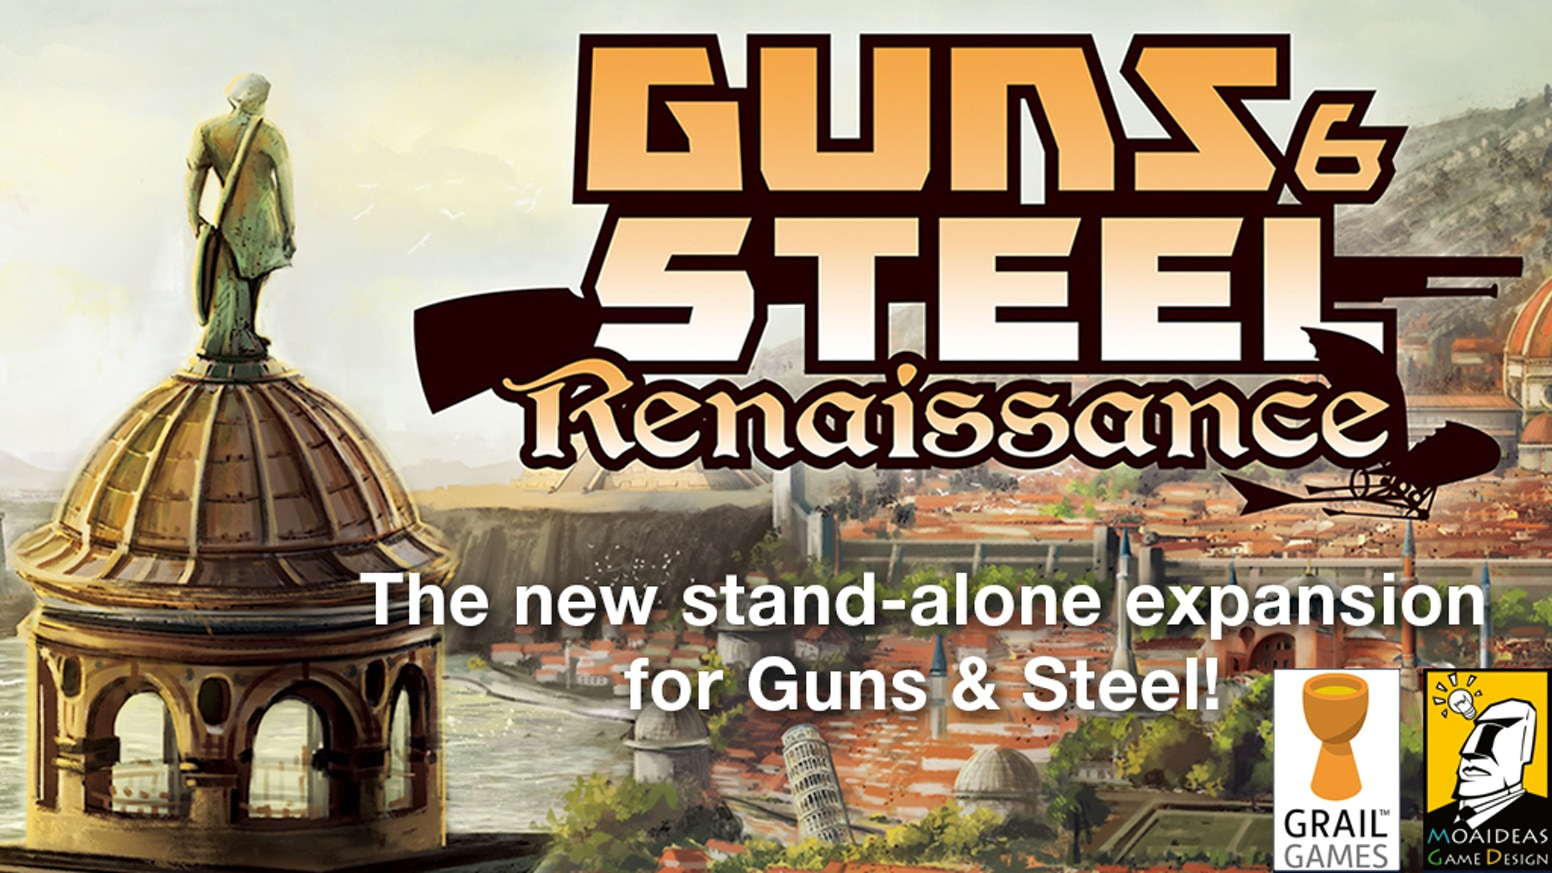 Guns & Steel: Renaissance is a new stand-alone expansion for the popular card game Guns & Steel. Build and protect your empire...again!